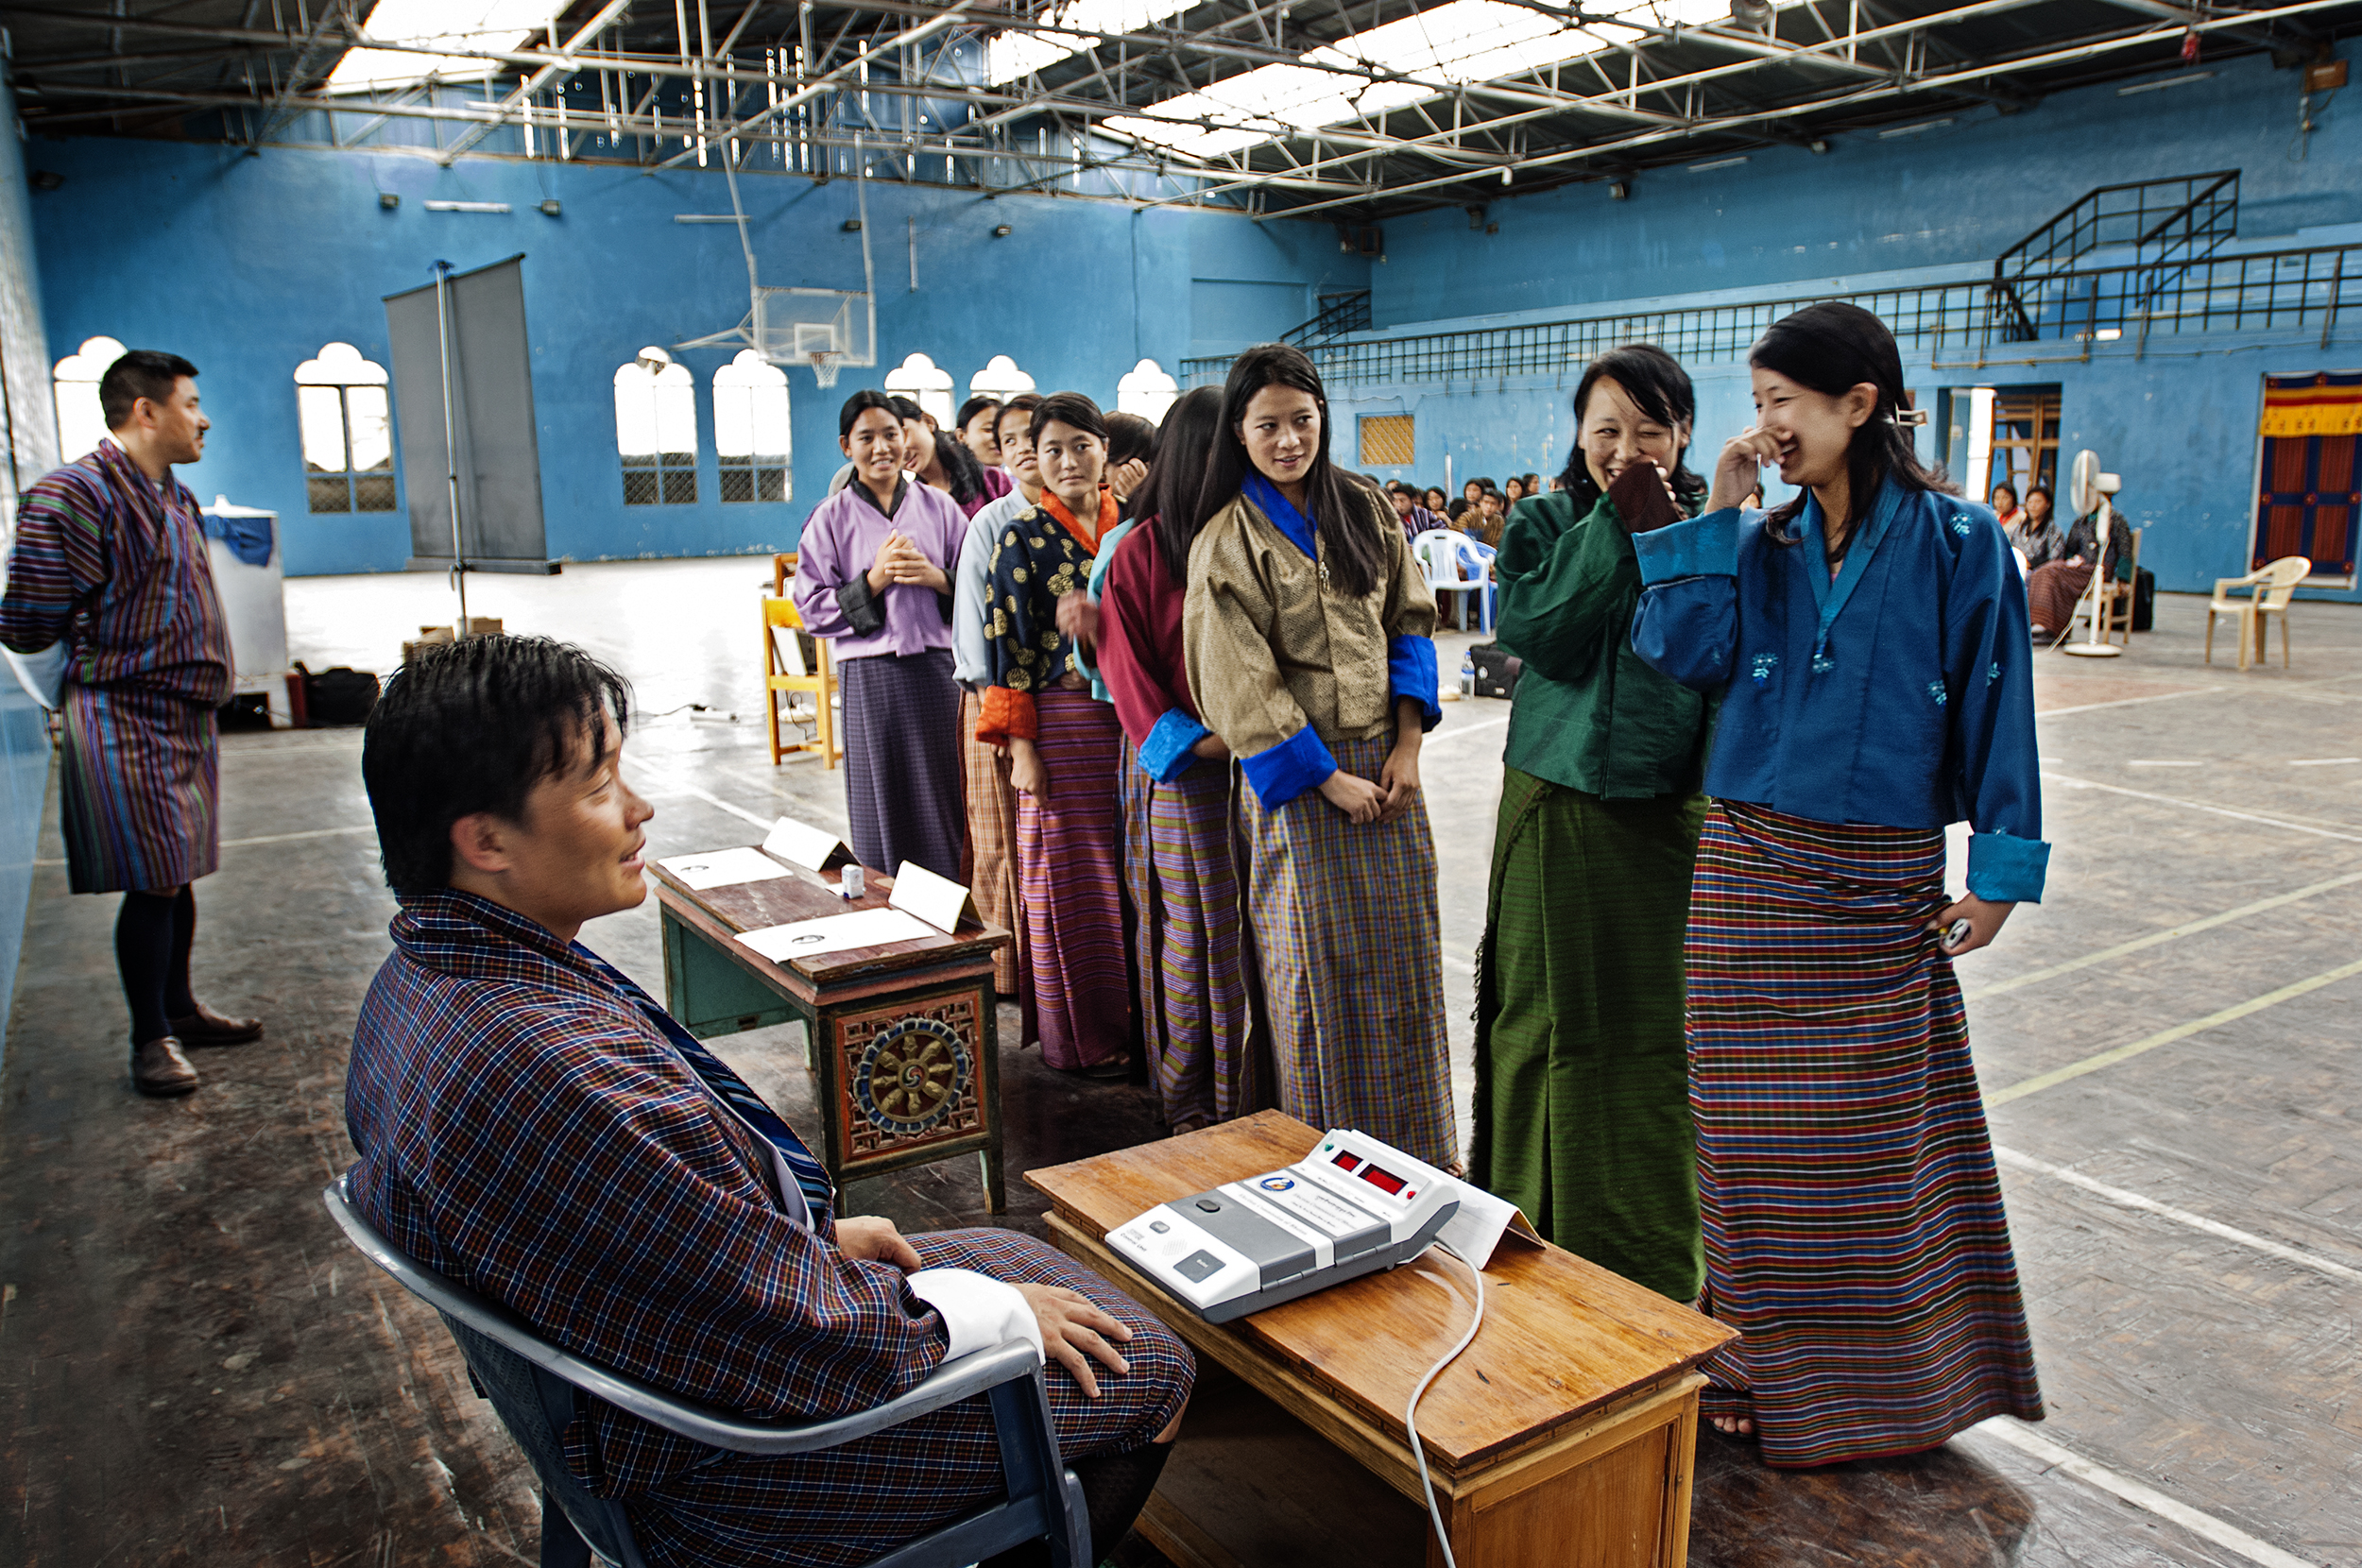 Web_Bhutan_Mock elections for the youth .jpg